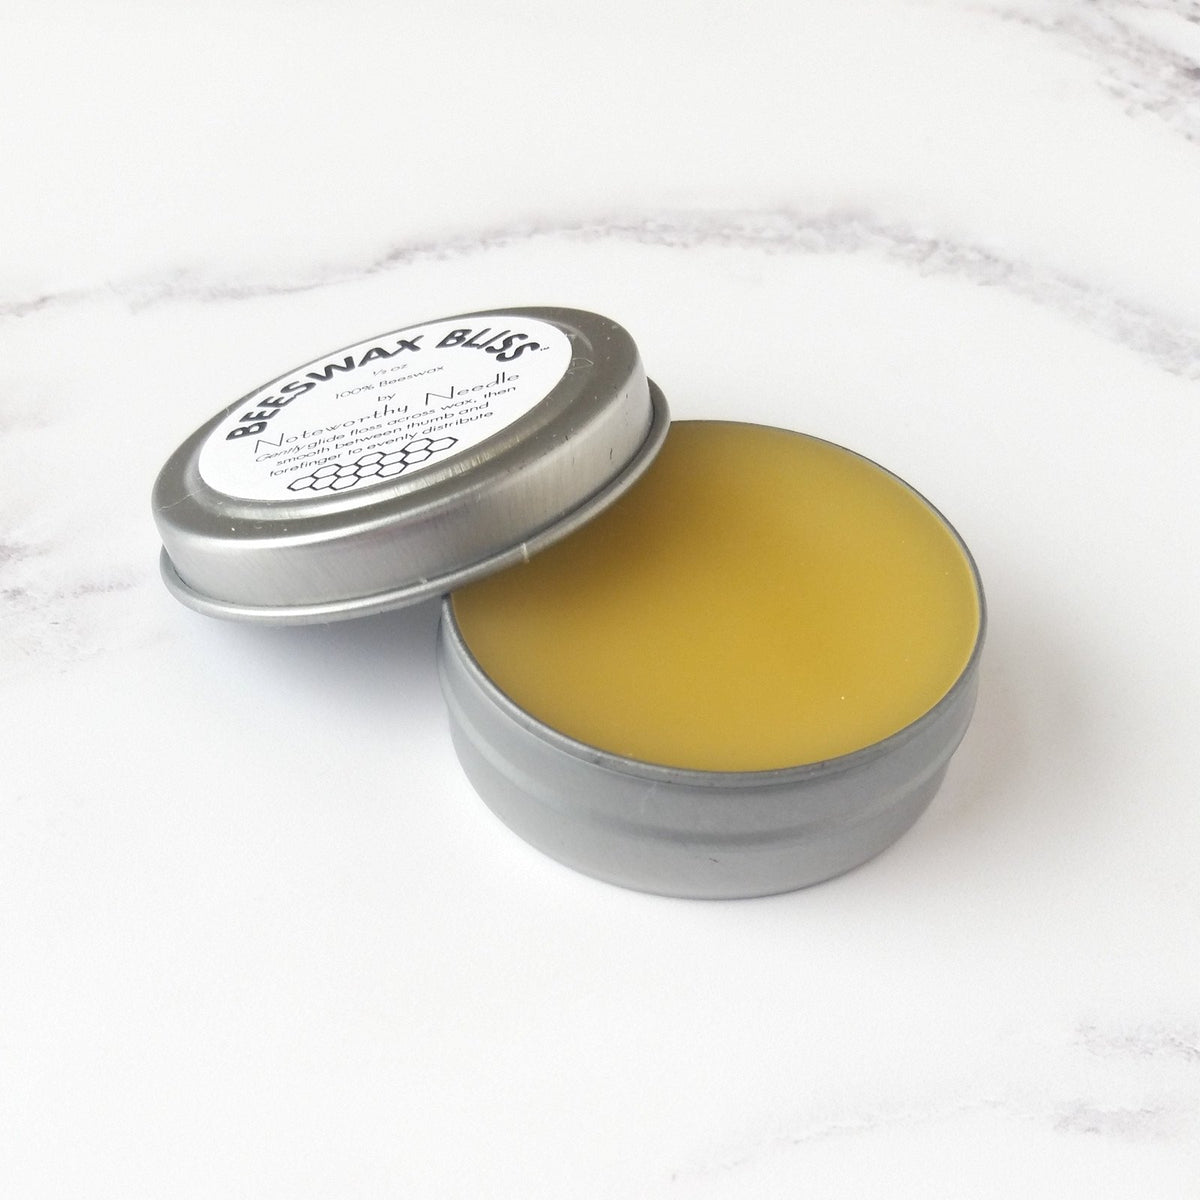 Beeswax Bliss Thread Conditioner